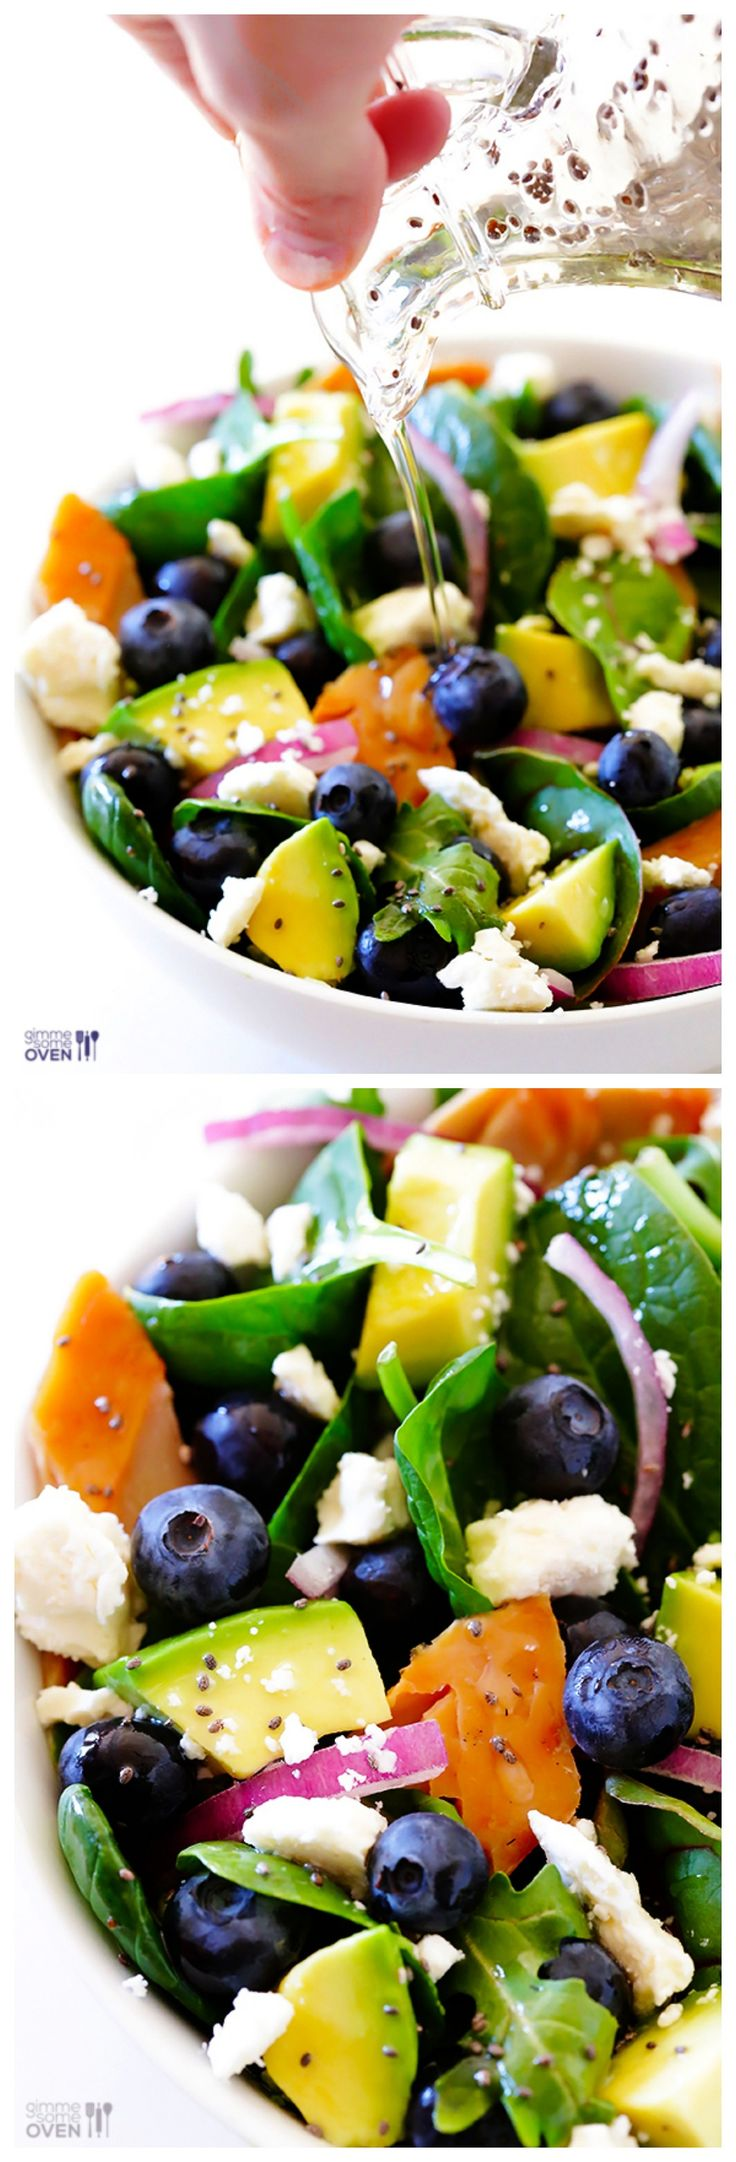 Brain Power Salad -- Besides being beautiful, this smart salad is filled with healthy and delicious ingredients…Spinach, Smoked Salmon, Avocado, Blueberries, Walnuts and Feta. Everything's Betta with Feta!! Dressed with a Honey Chia Seed Vinaigrette! All are good for brain health! | gimmesomeoven.com #salad #recipe